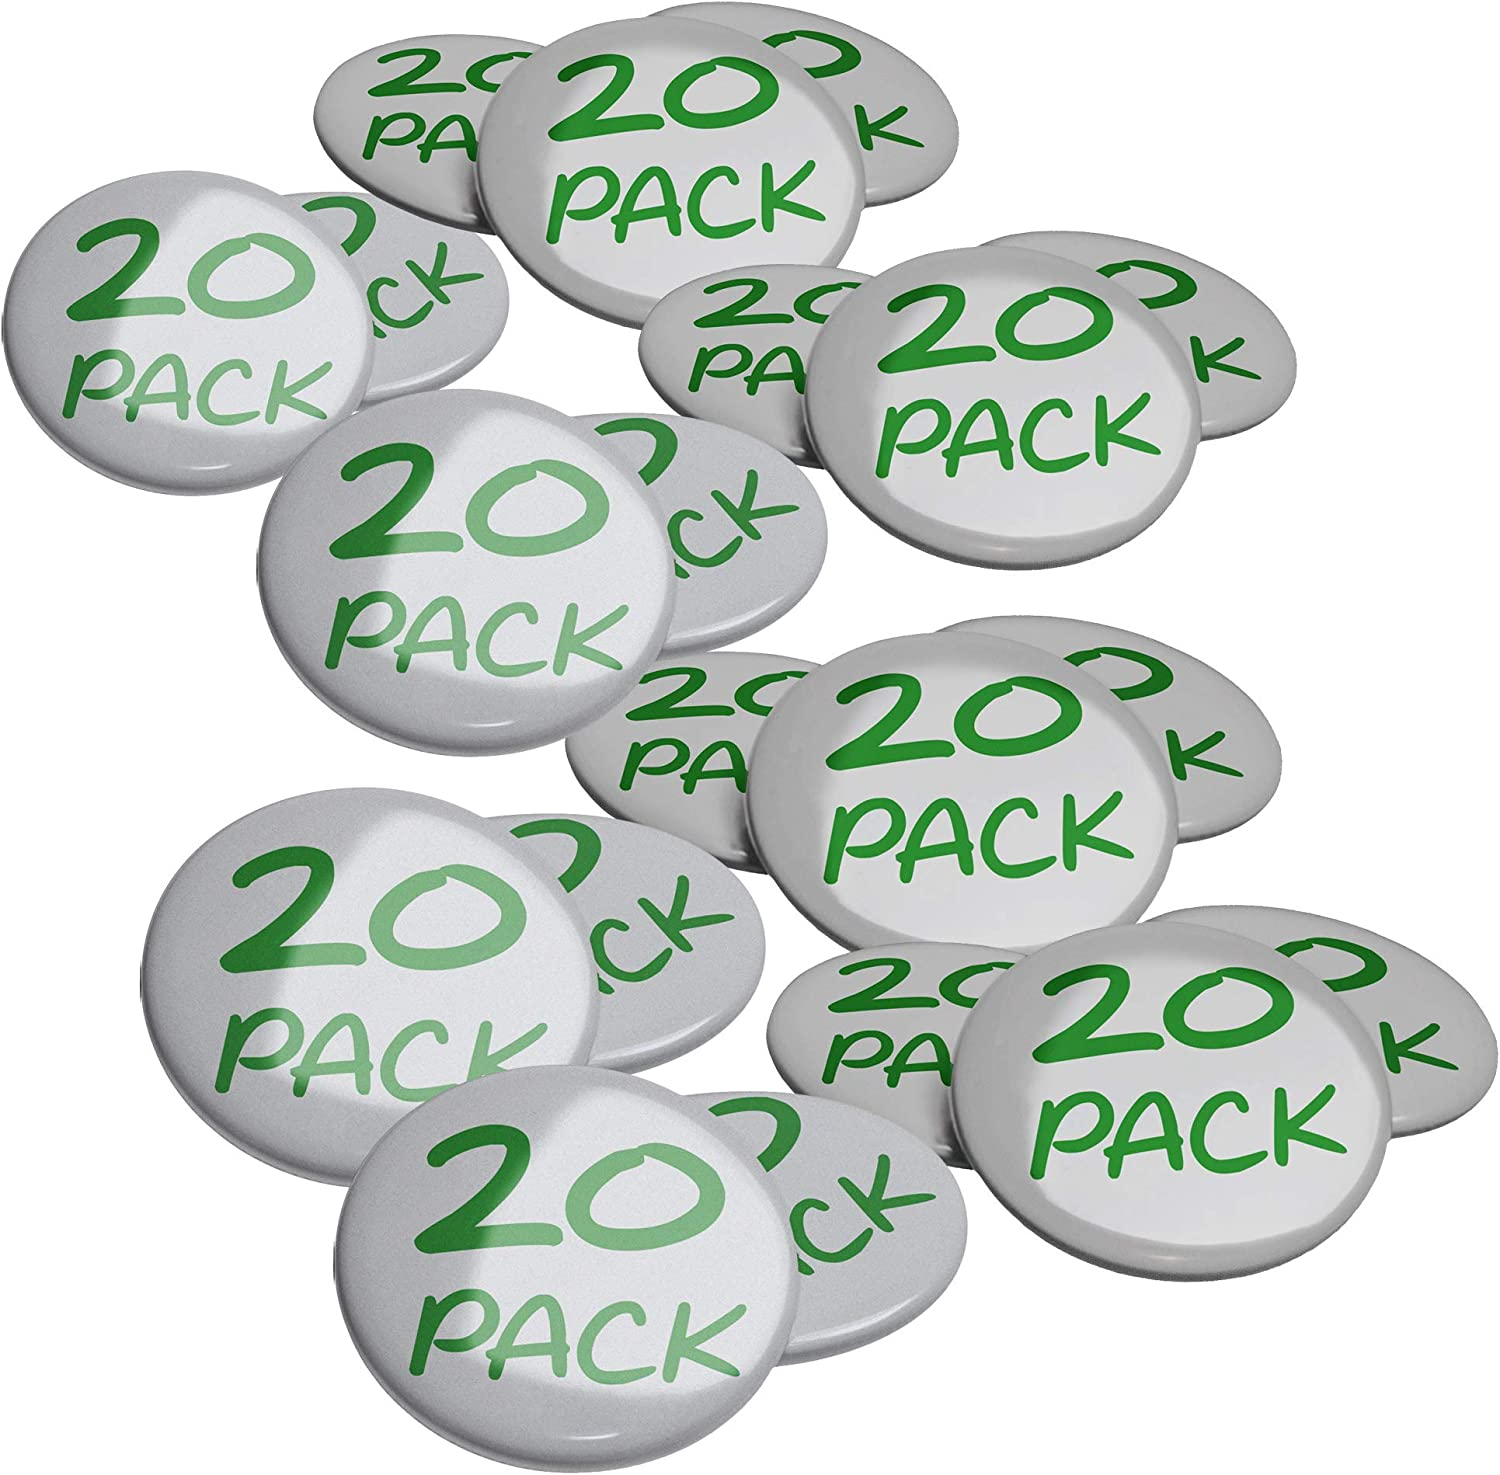 Custom Pin-Back Buttons Max 81% OFF - Add Your Picture Own Photo New sales Logo or